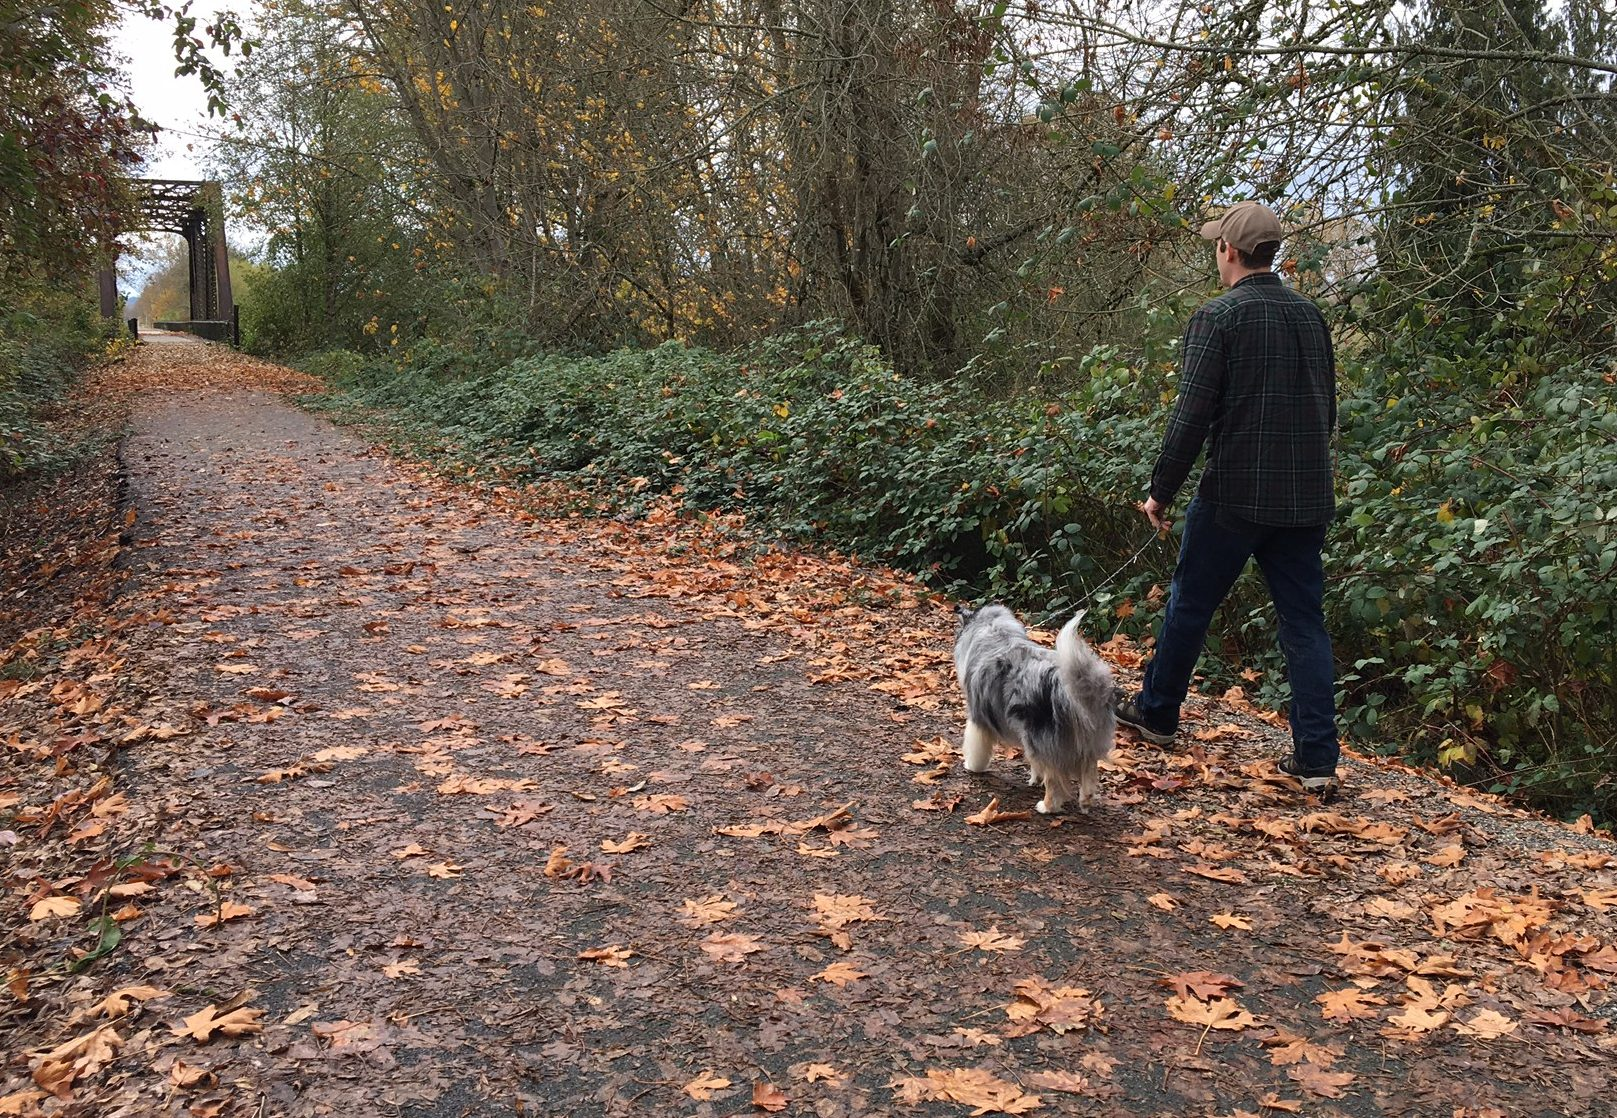 Best Dog Walks in Lewis County for Wet Weather - LewisTalkWA